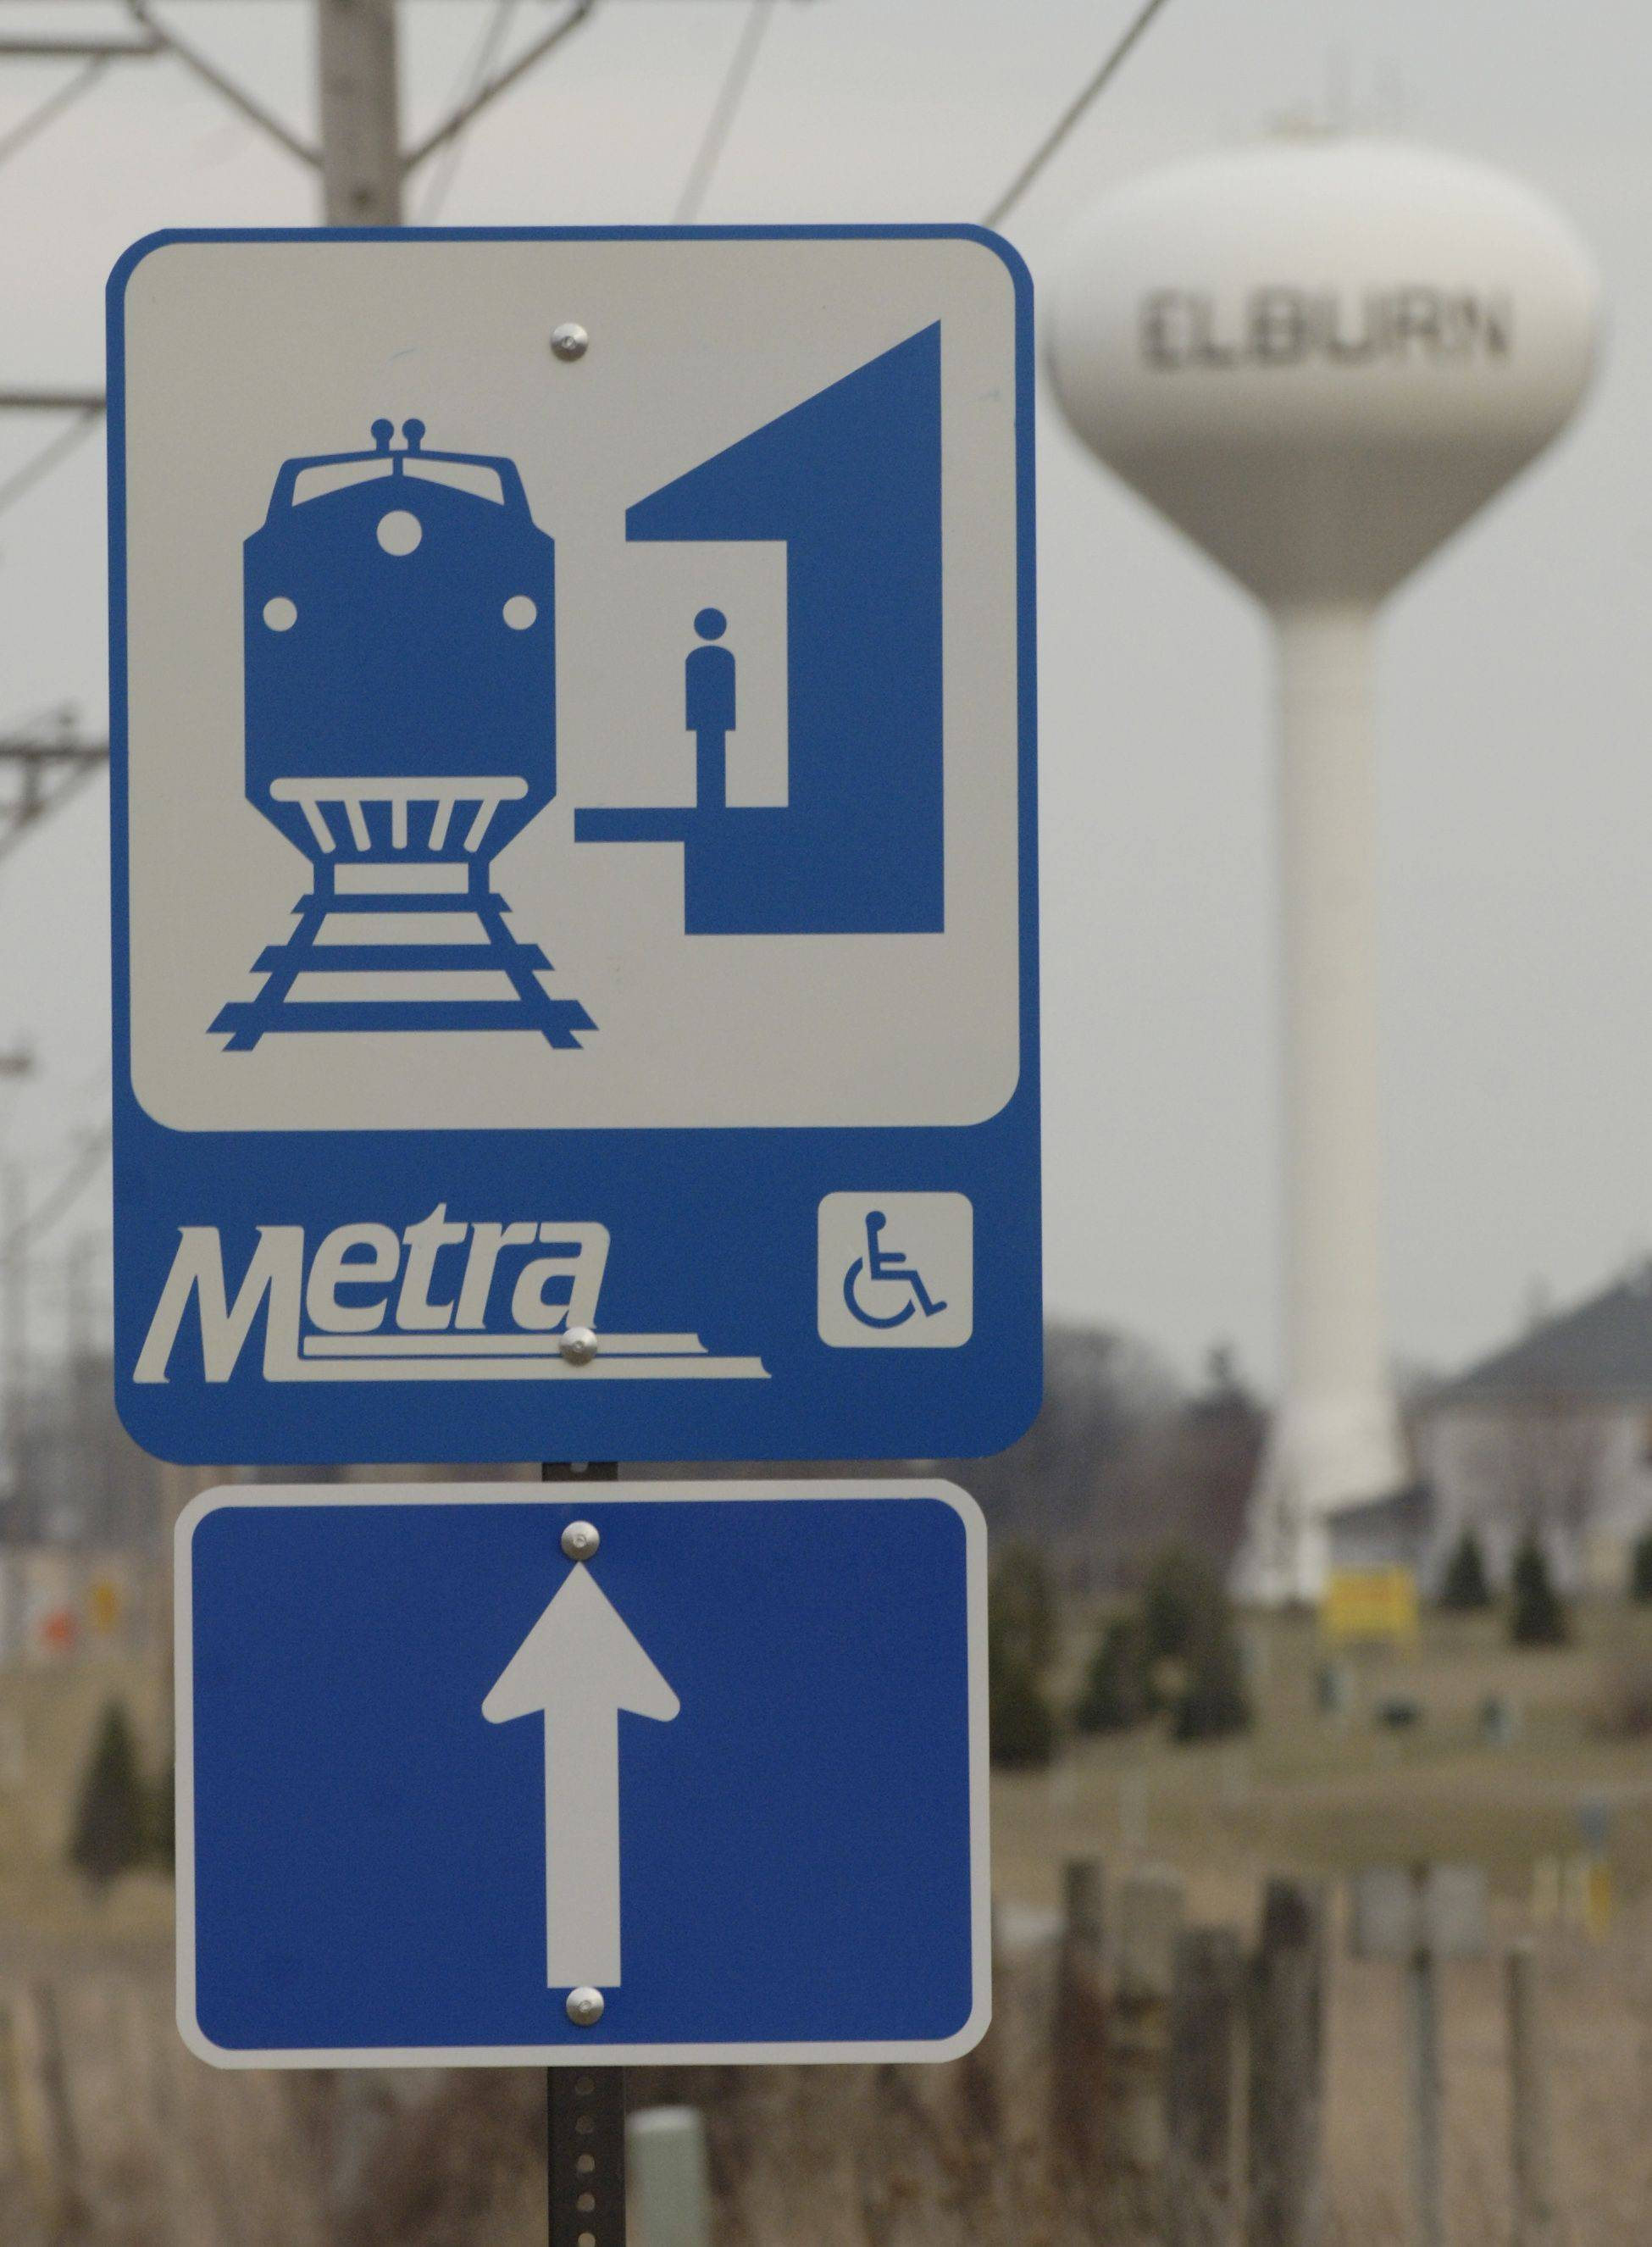 Metra riders could pay up to 25 percent more to ride and see service reductions becaue the rail agency is anticipating a $100 million budget shortfall by 2013.